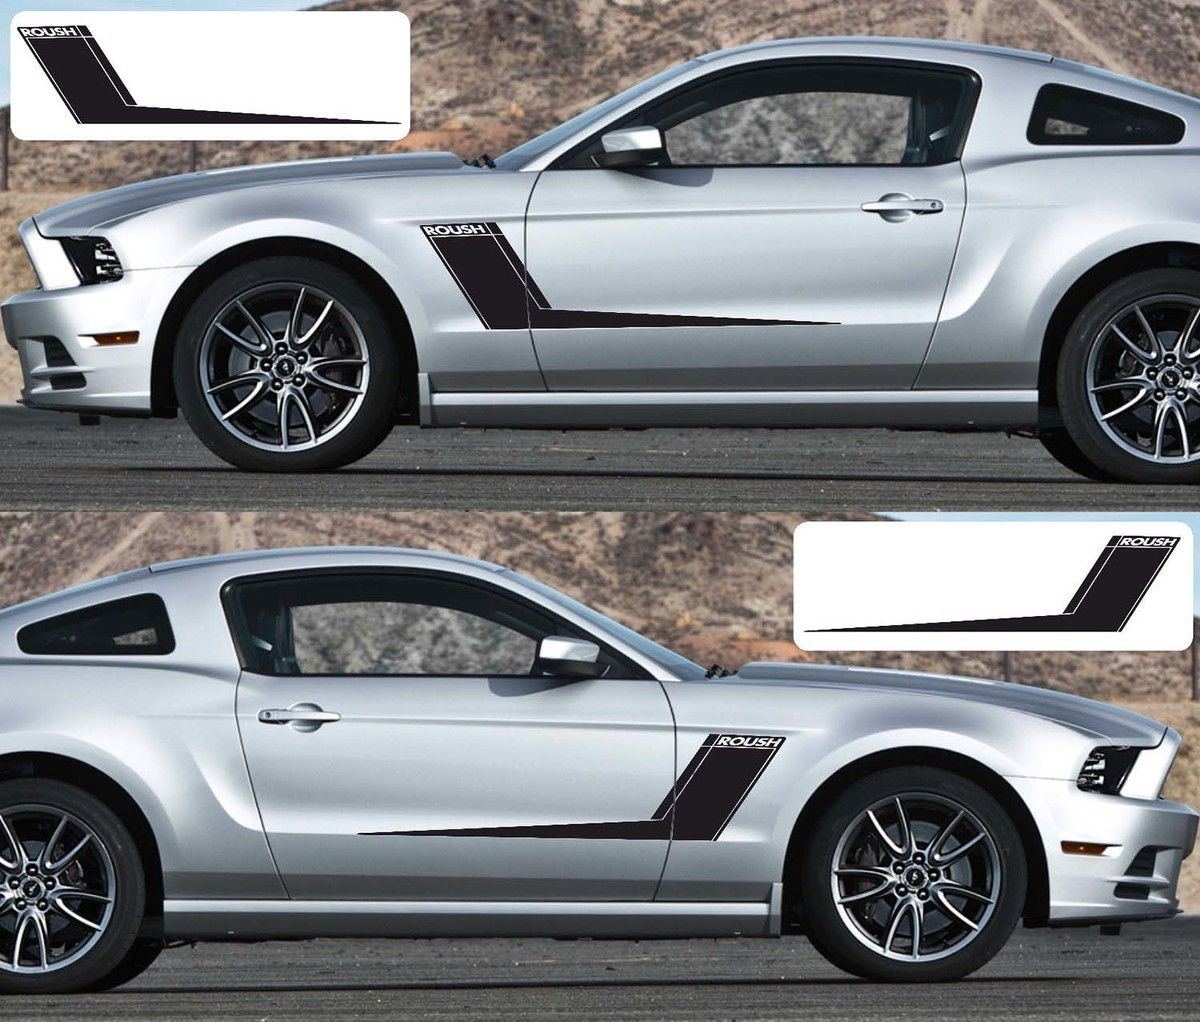 2x Ford Mustang Side Roush Vinyl Decals Graphics Rally Stripe Kit [ 1022 x 1200 Pixel ]